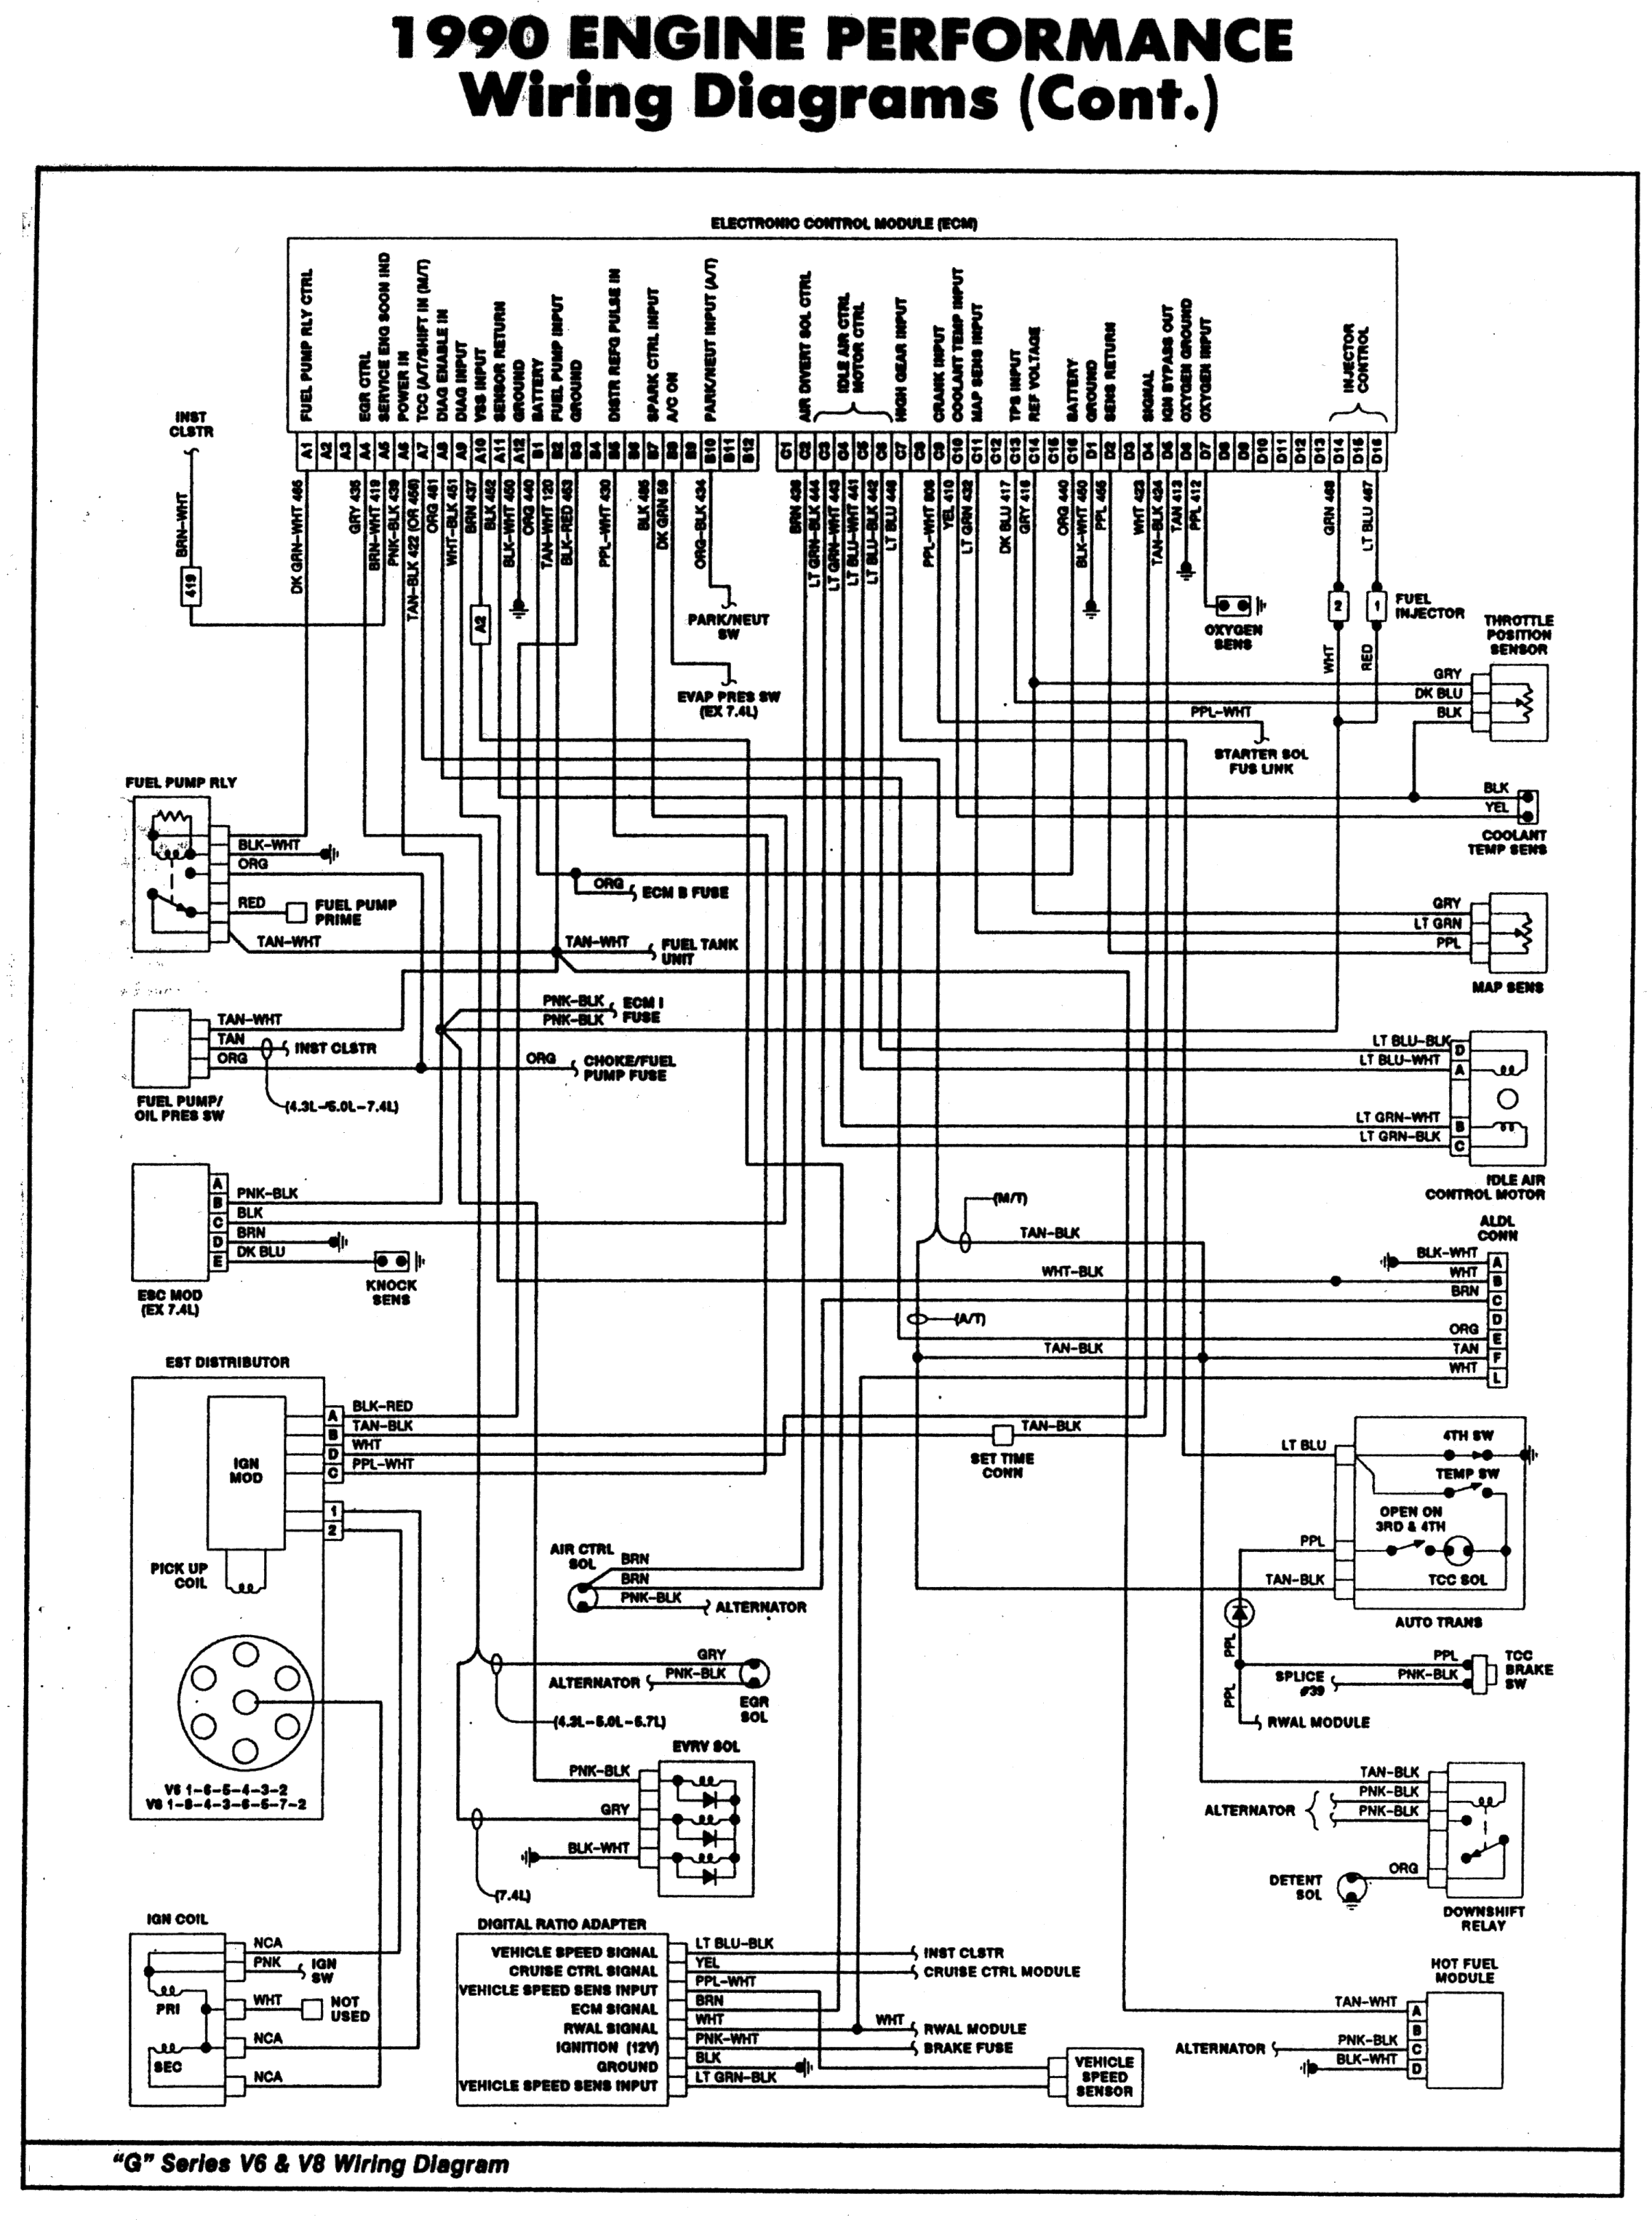 1990 4 3 chevy tbi wiring diagram 13 frv capecoral bootsvermietung rh 13 frv capecoral bootsvermietung de